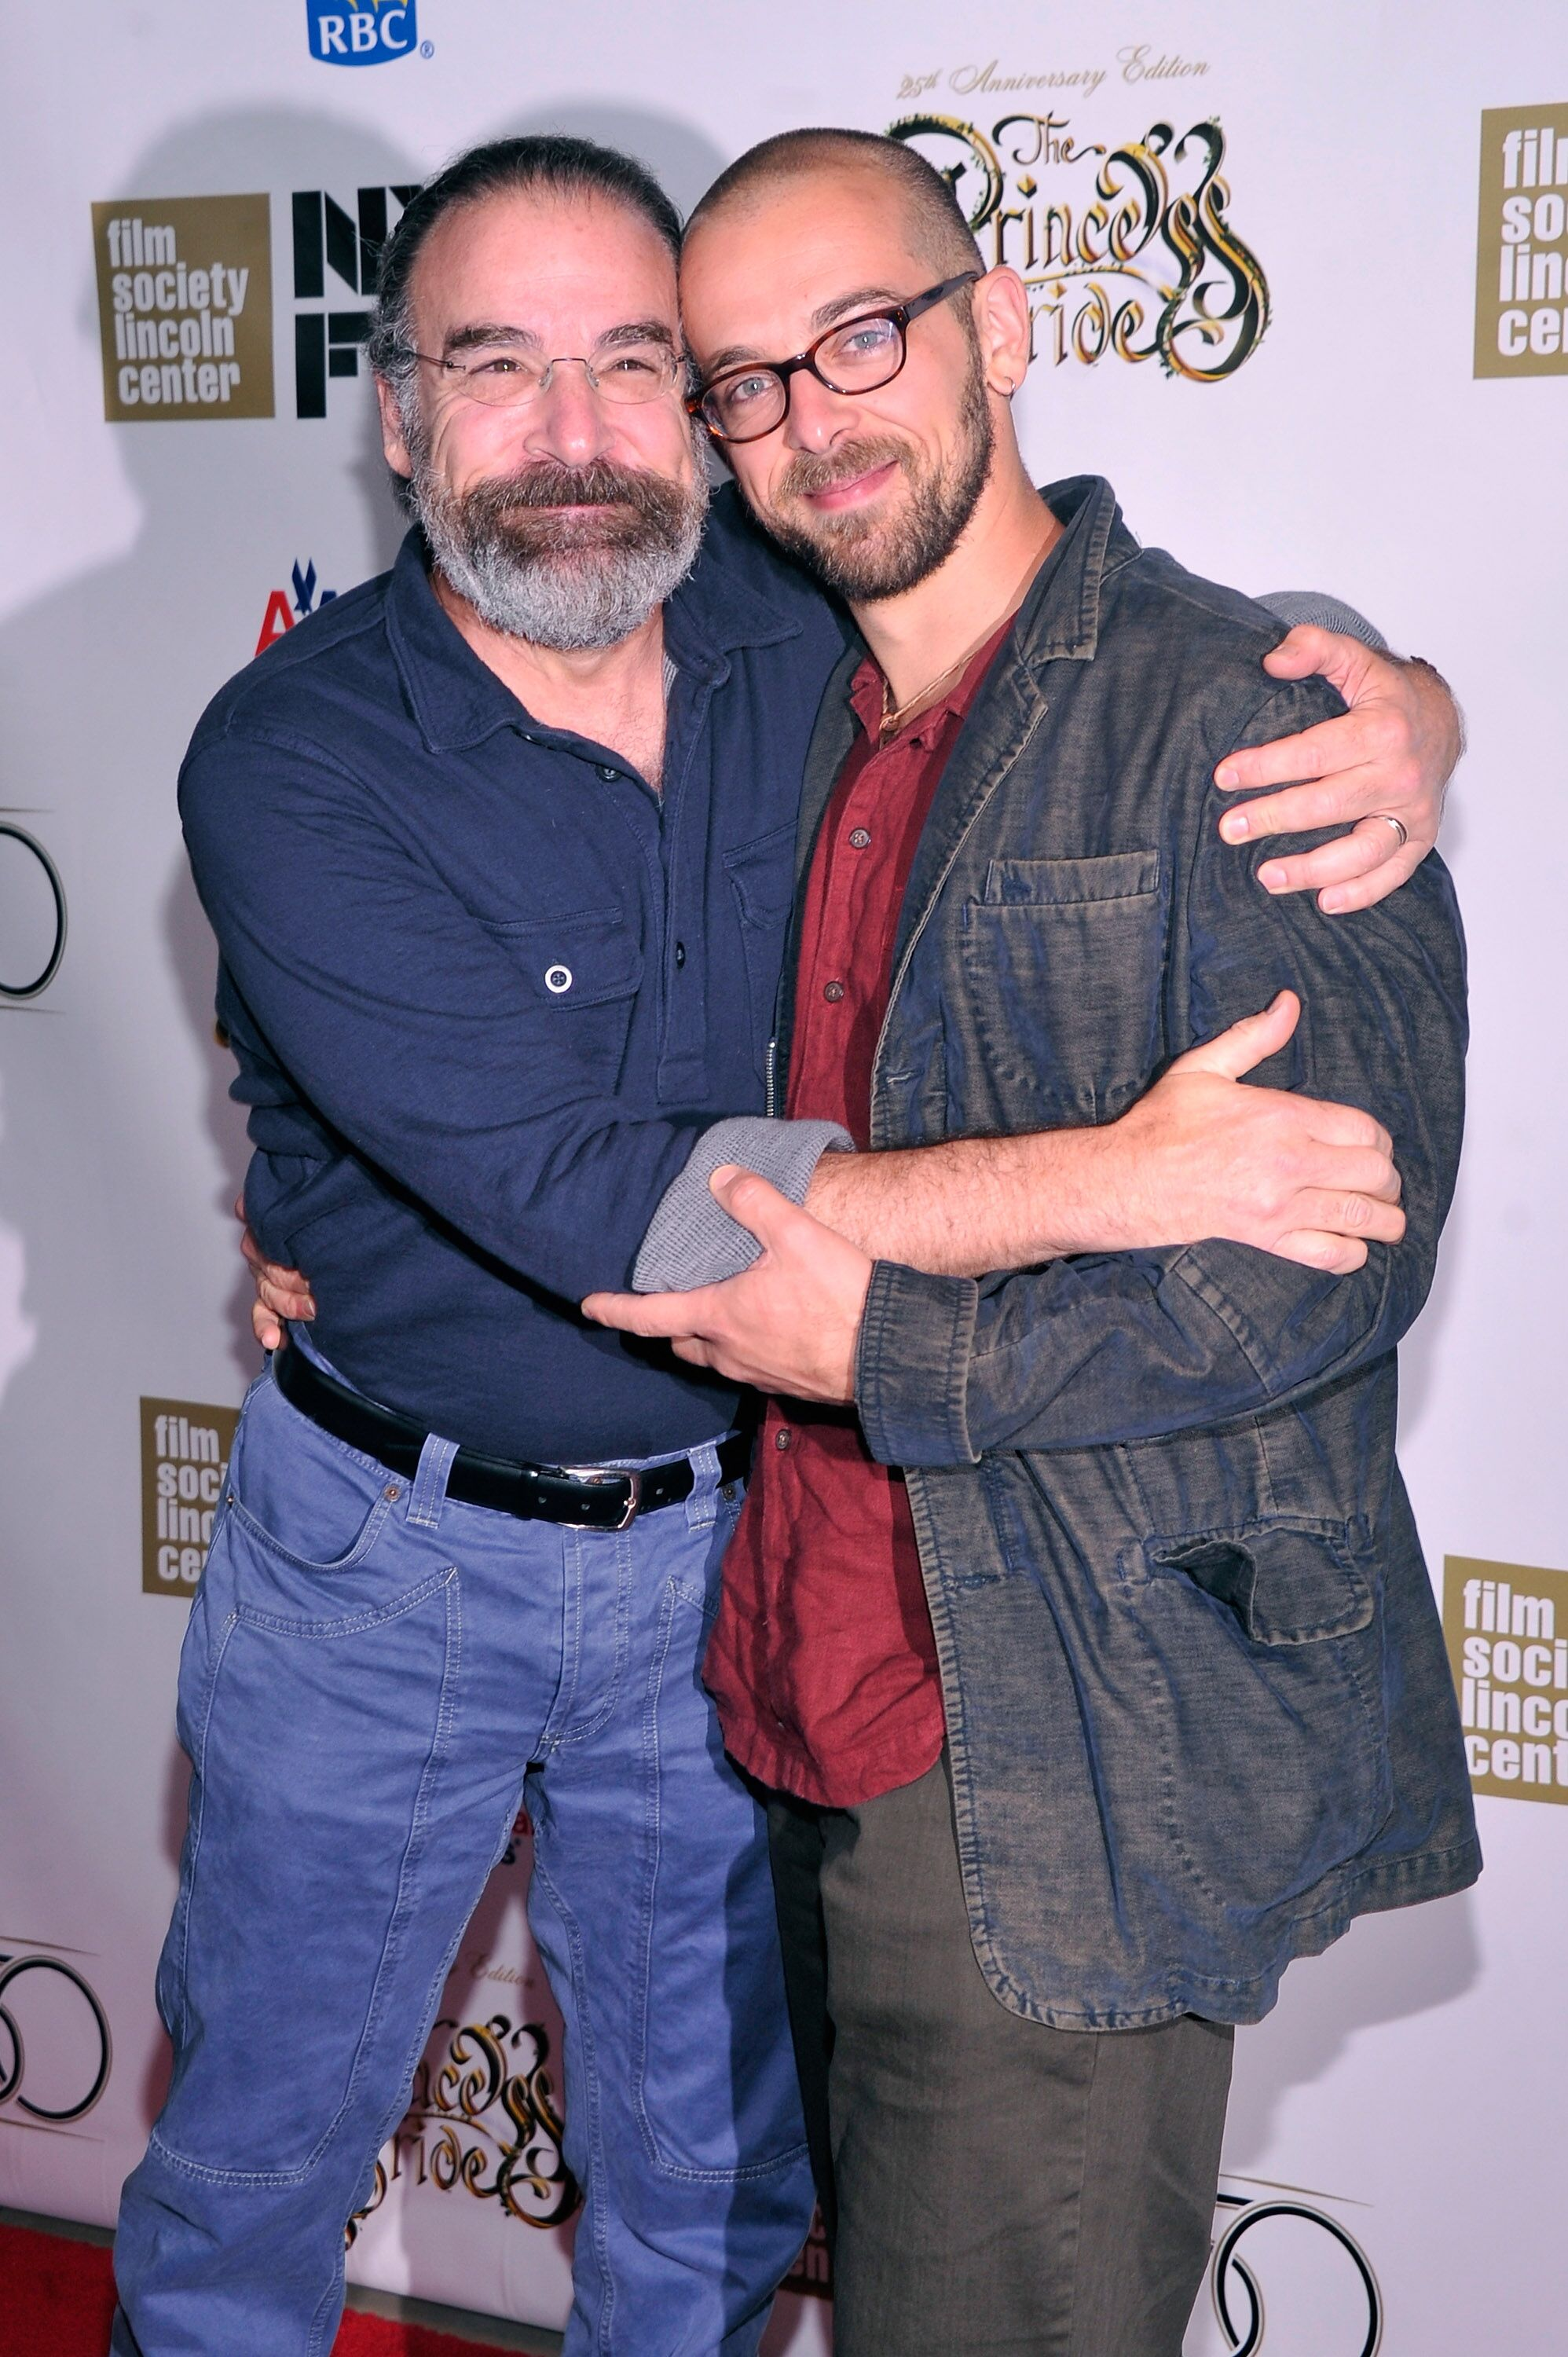 Mandy Patinkin and Isaac Patinkin at Alice Tully Hall on October 2, 2012 in New York City | Photo: Getty Images